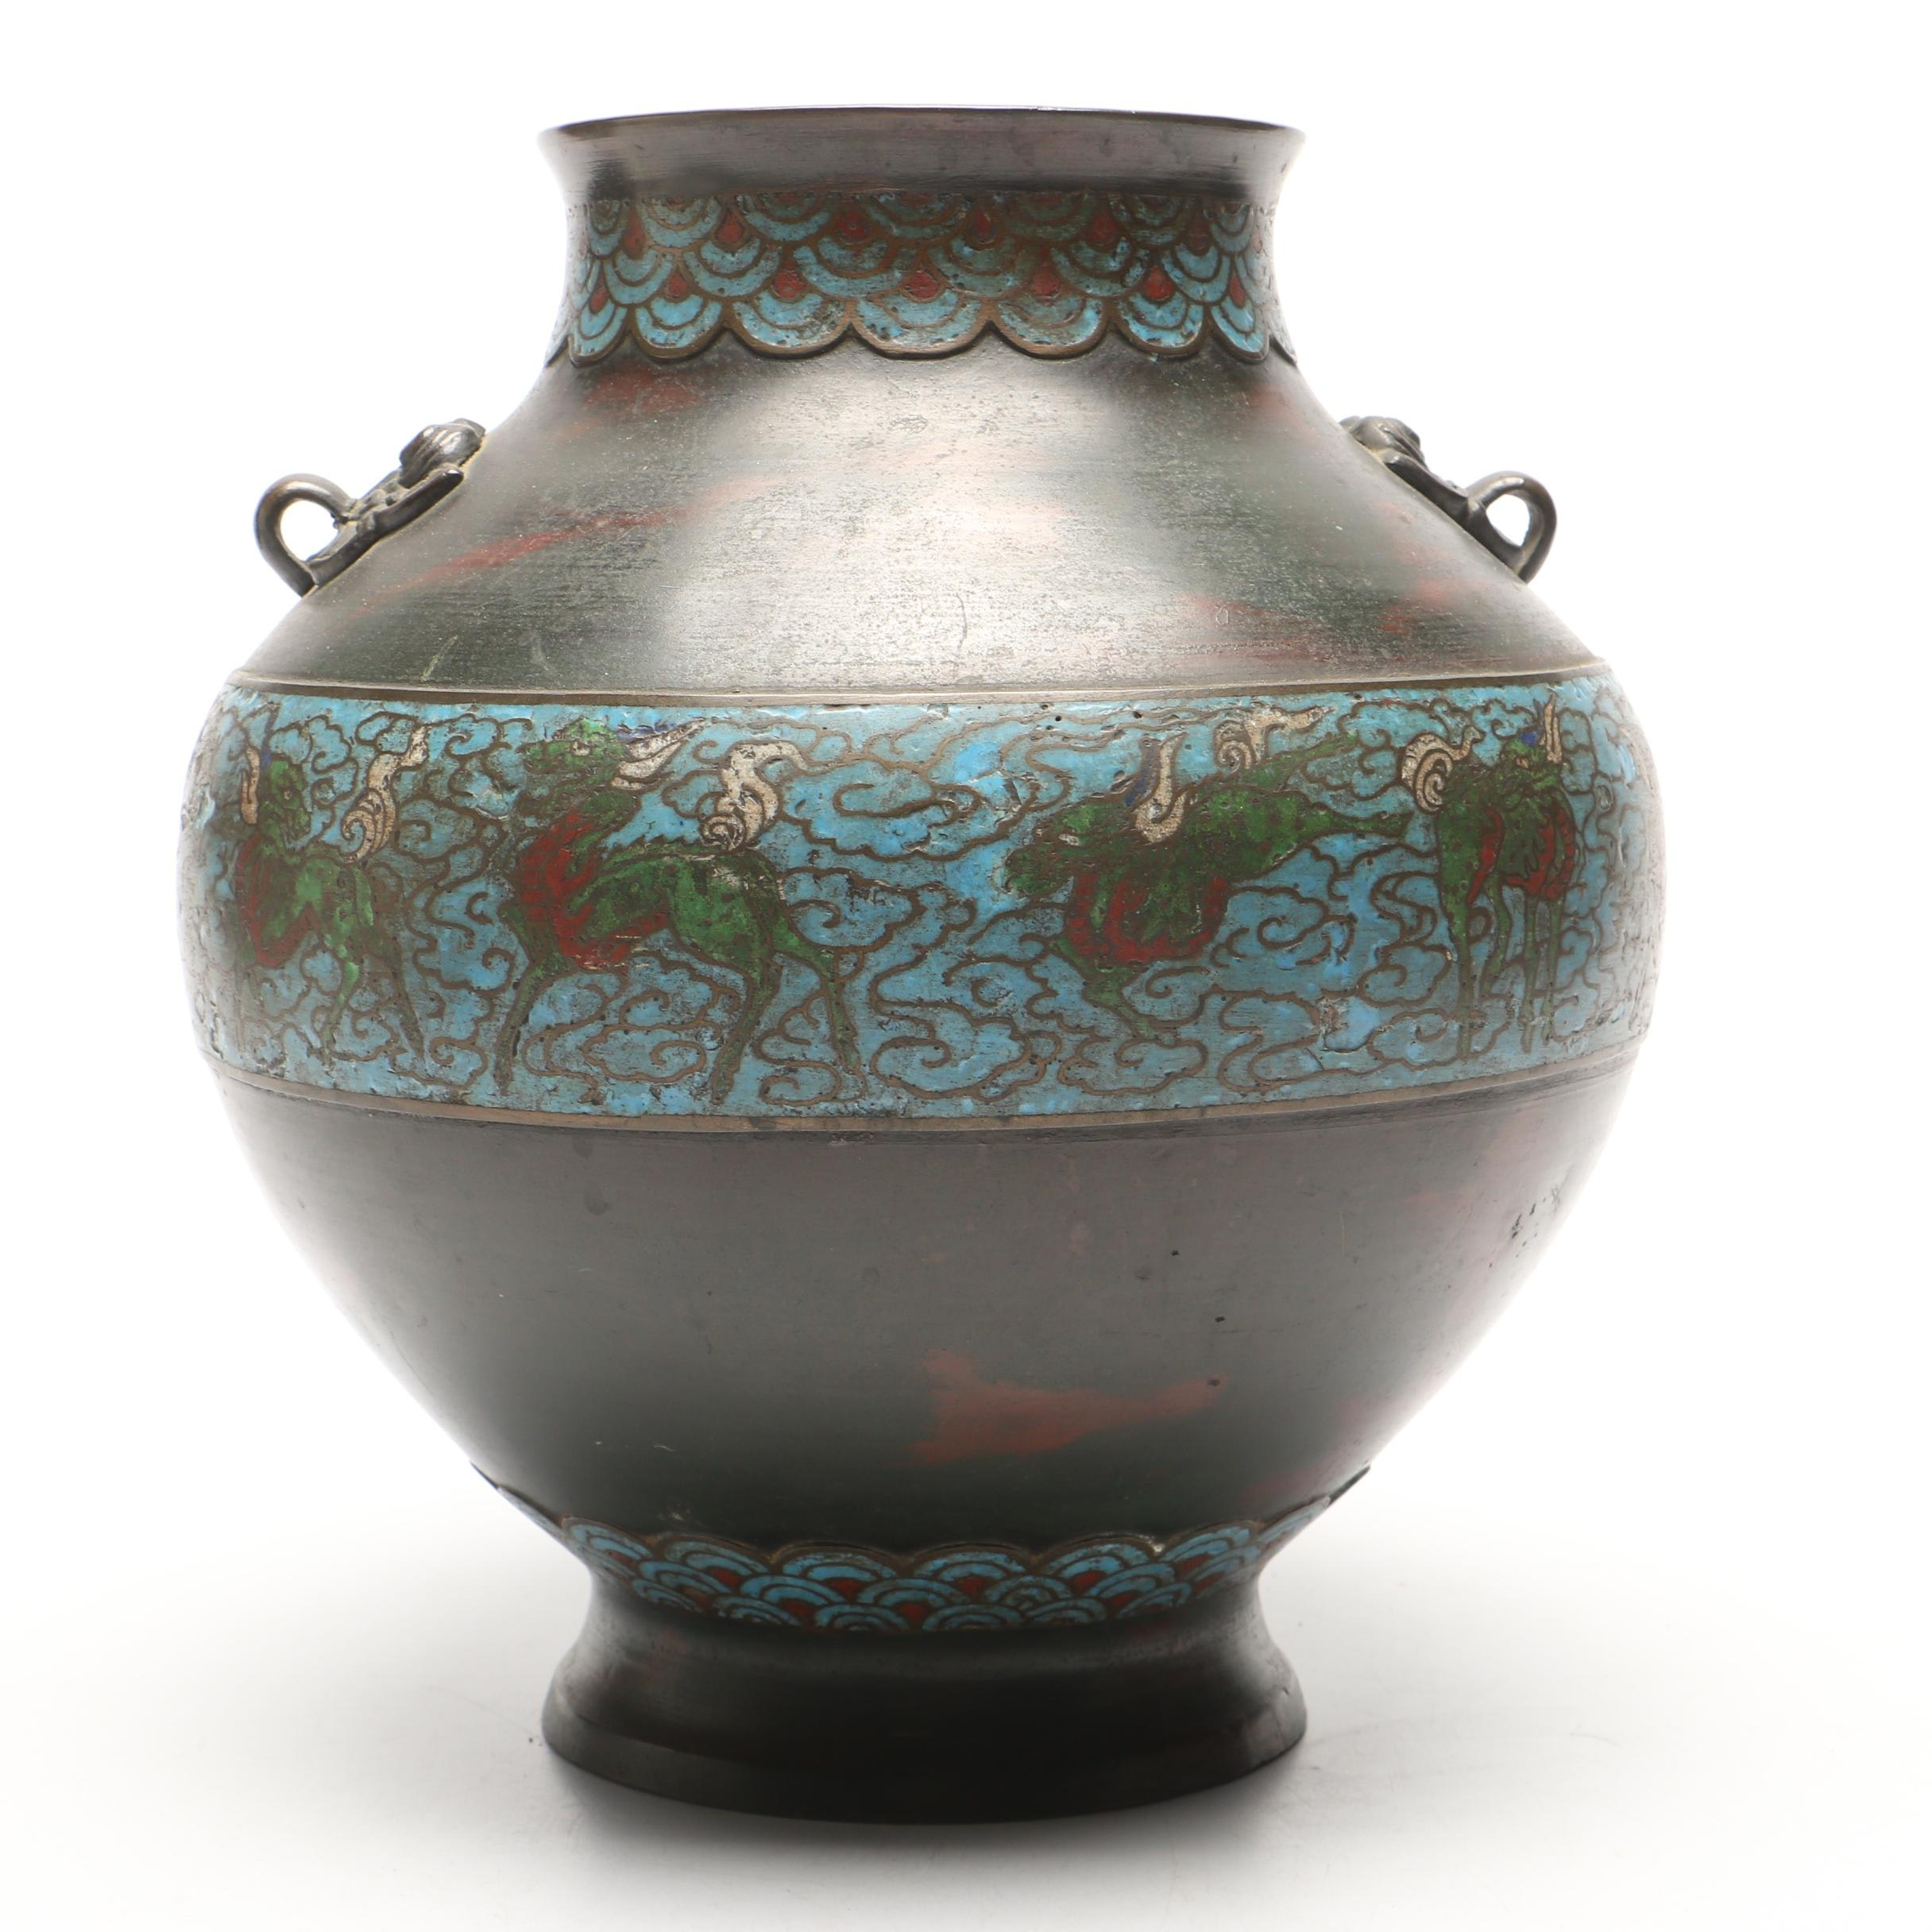 Chinese Cloisonné Bronze Vase with Qilin Motif, Late Qing Dynasty